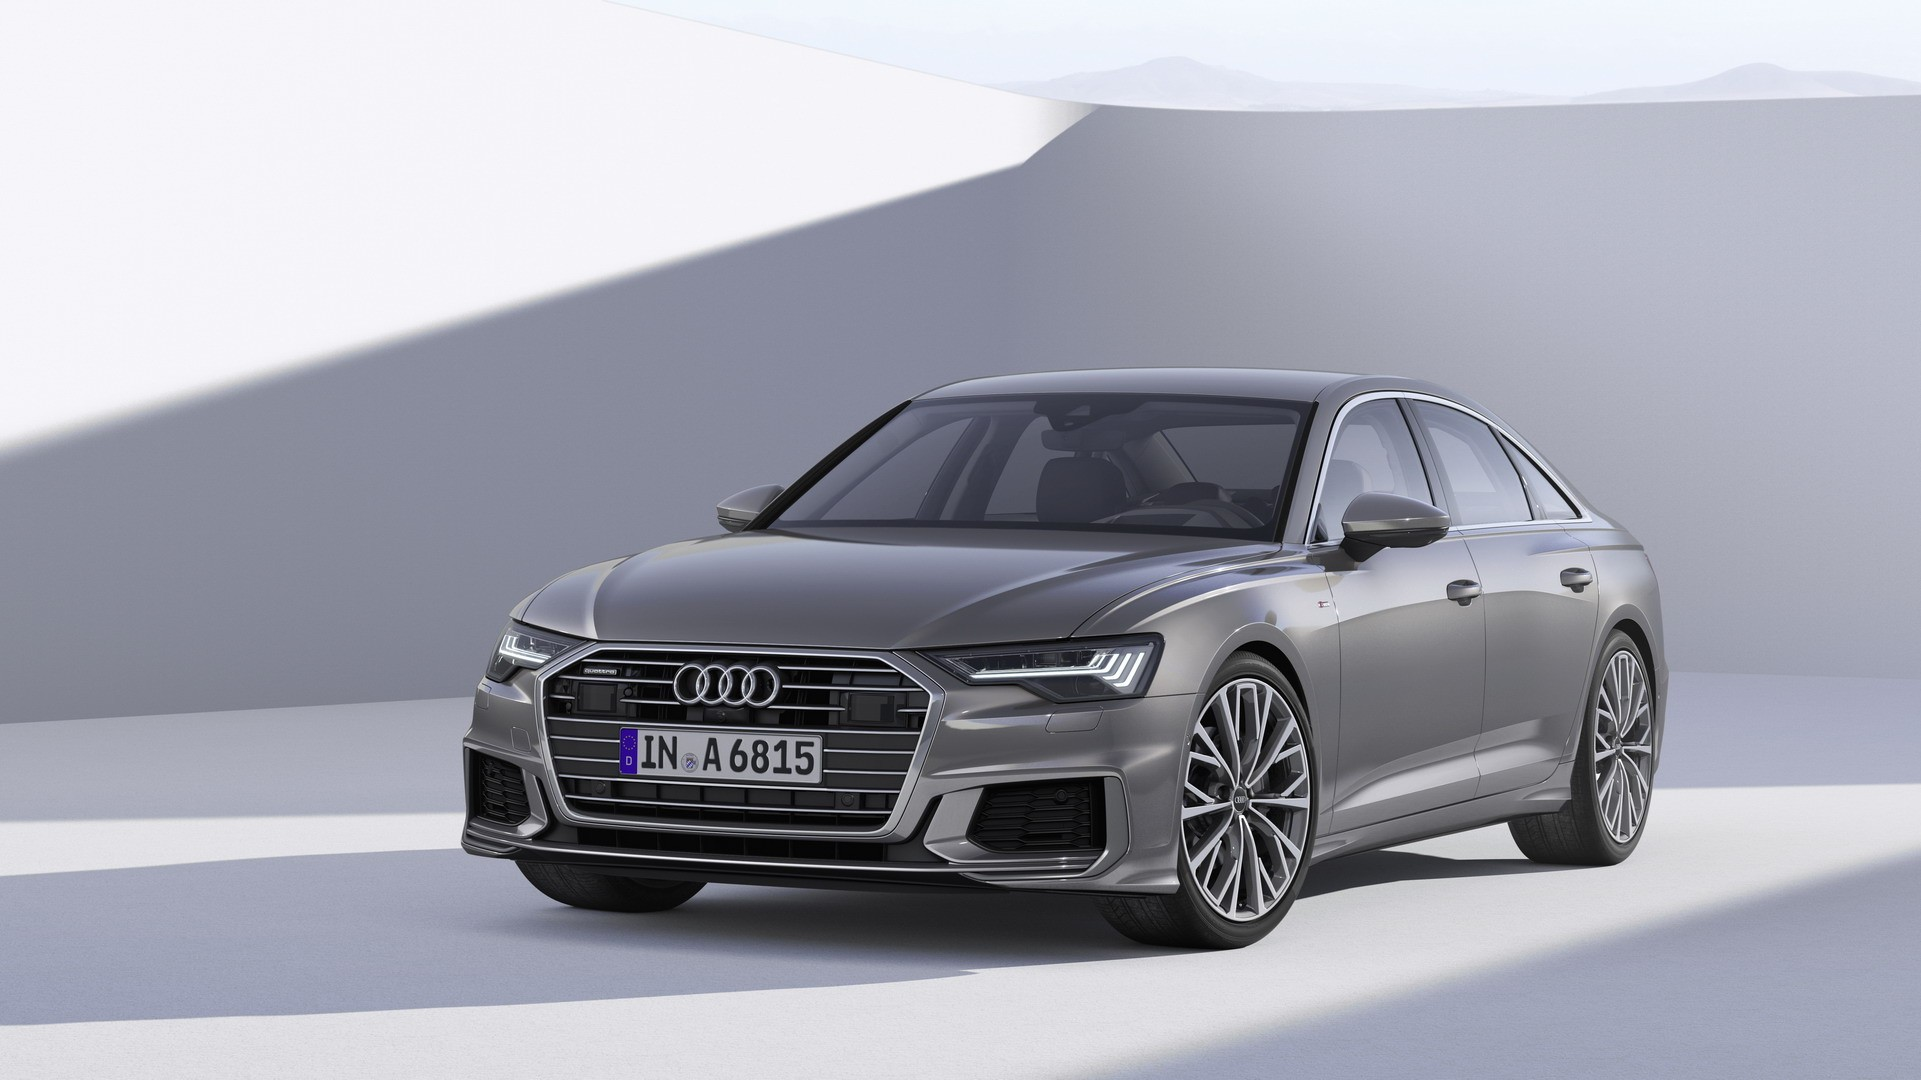 2019 Audi A6 Revealed With Mild-Hybrid V6 Engines, Quattro